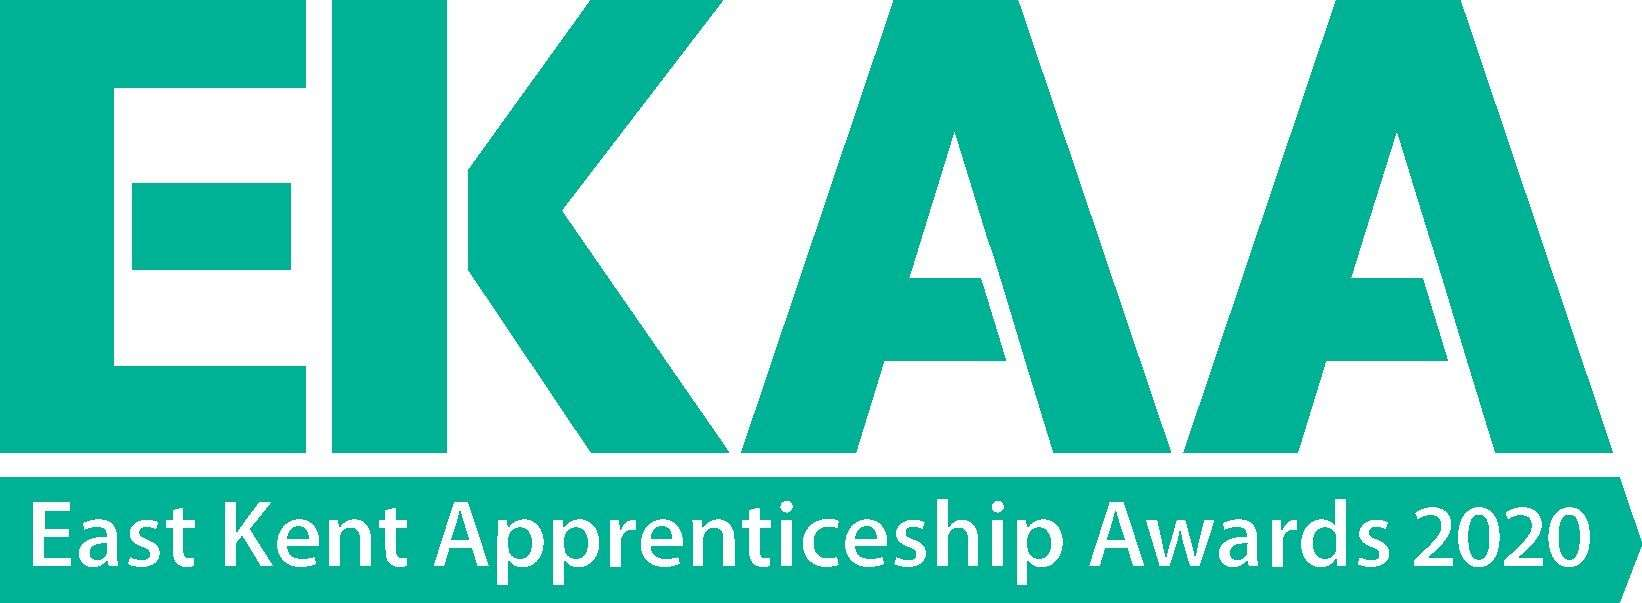 Do you know an apprentice in East Kent that deserves special recognition? Here's a chance to show your appreciation!